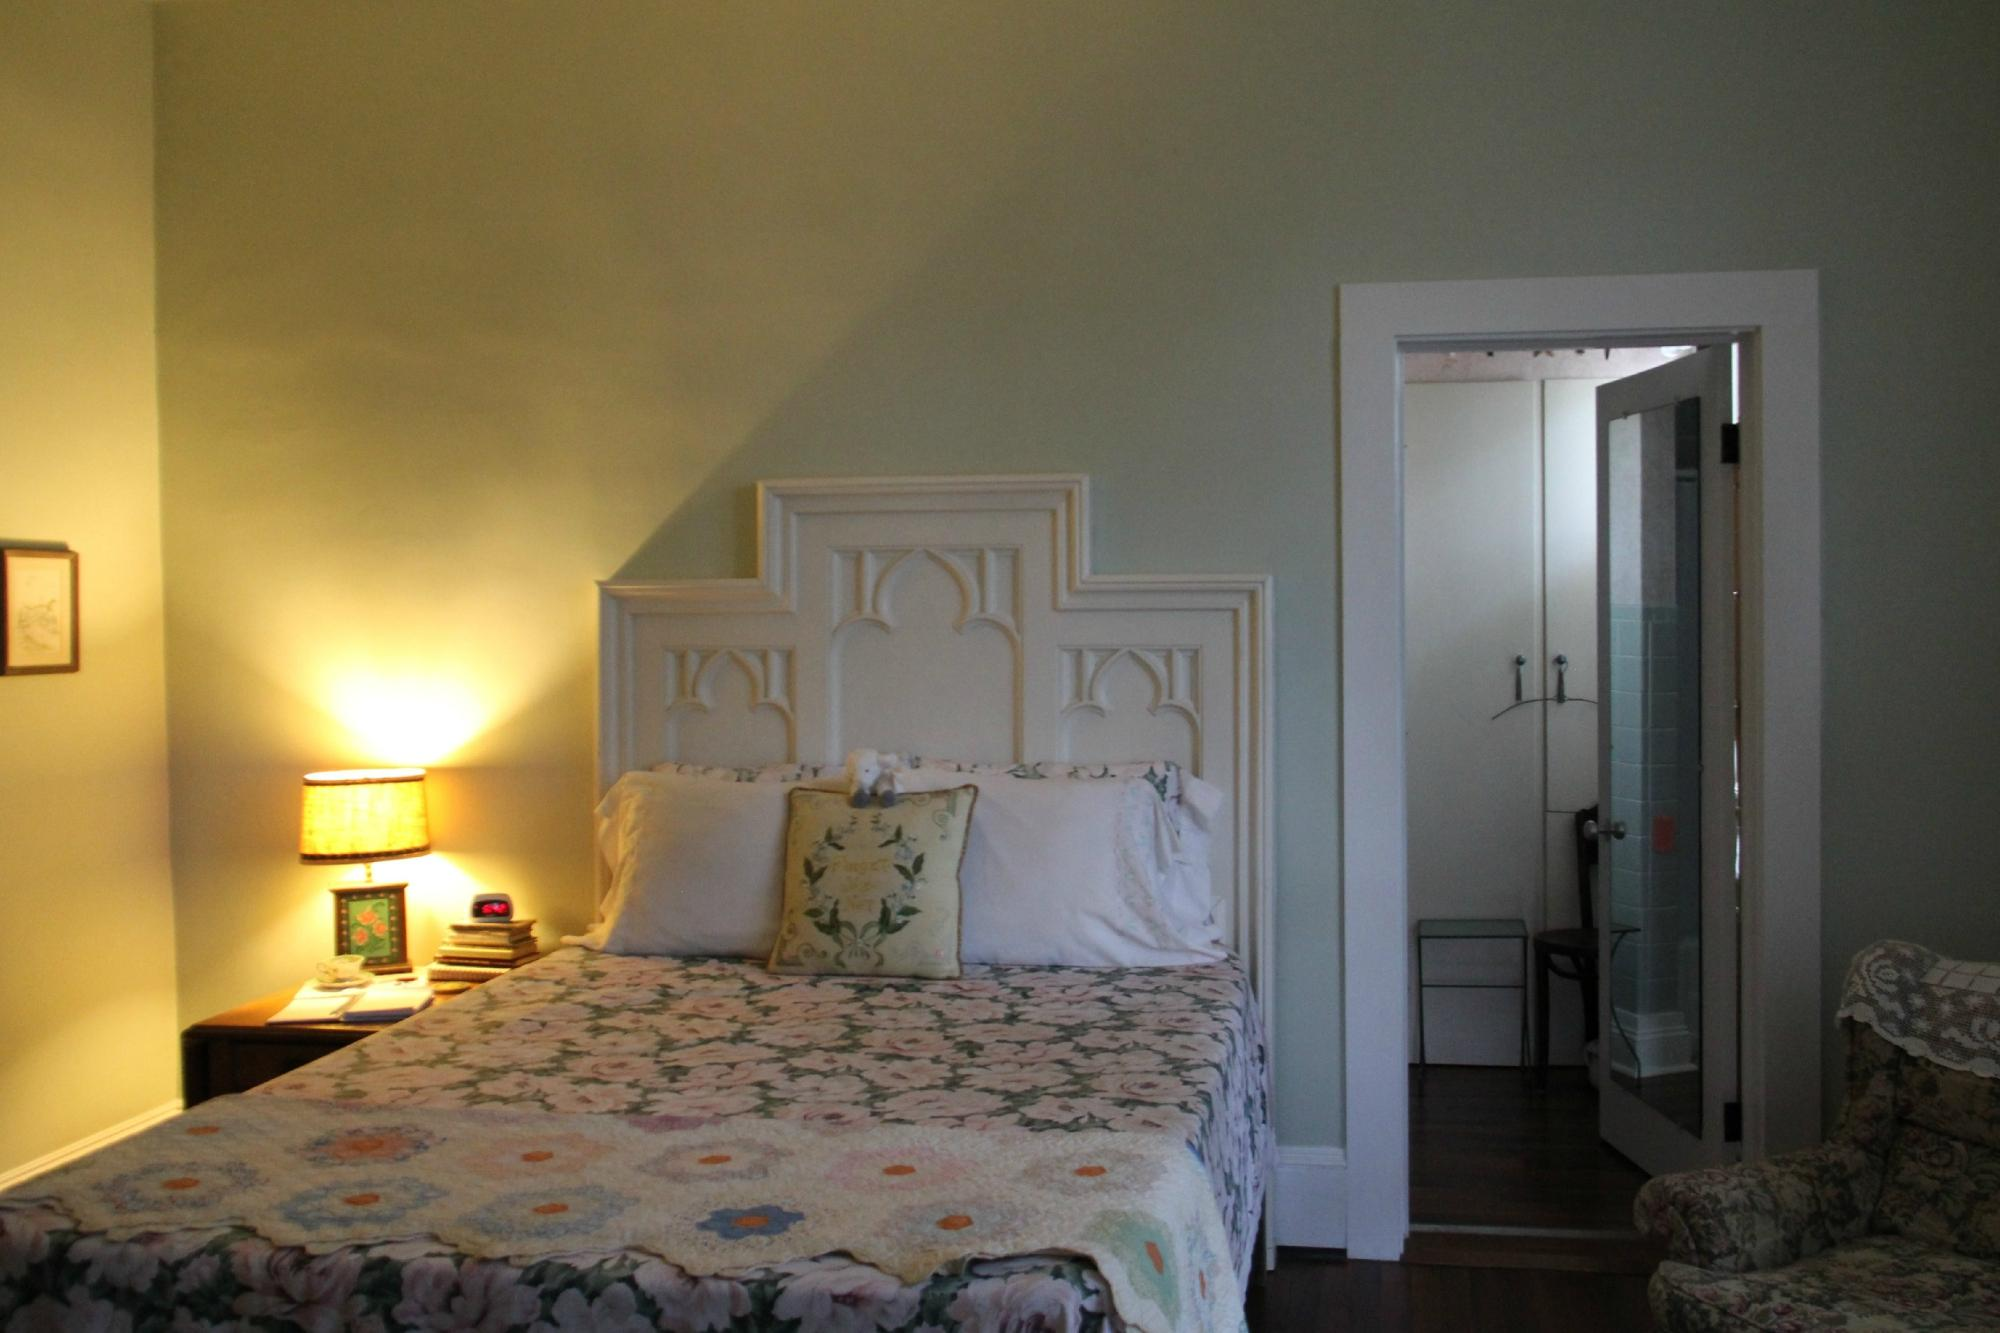 The Forget-Me-Not Bed and Breakfast